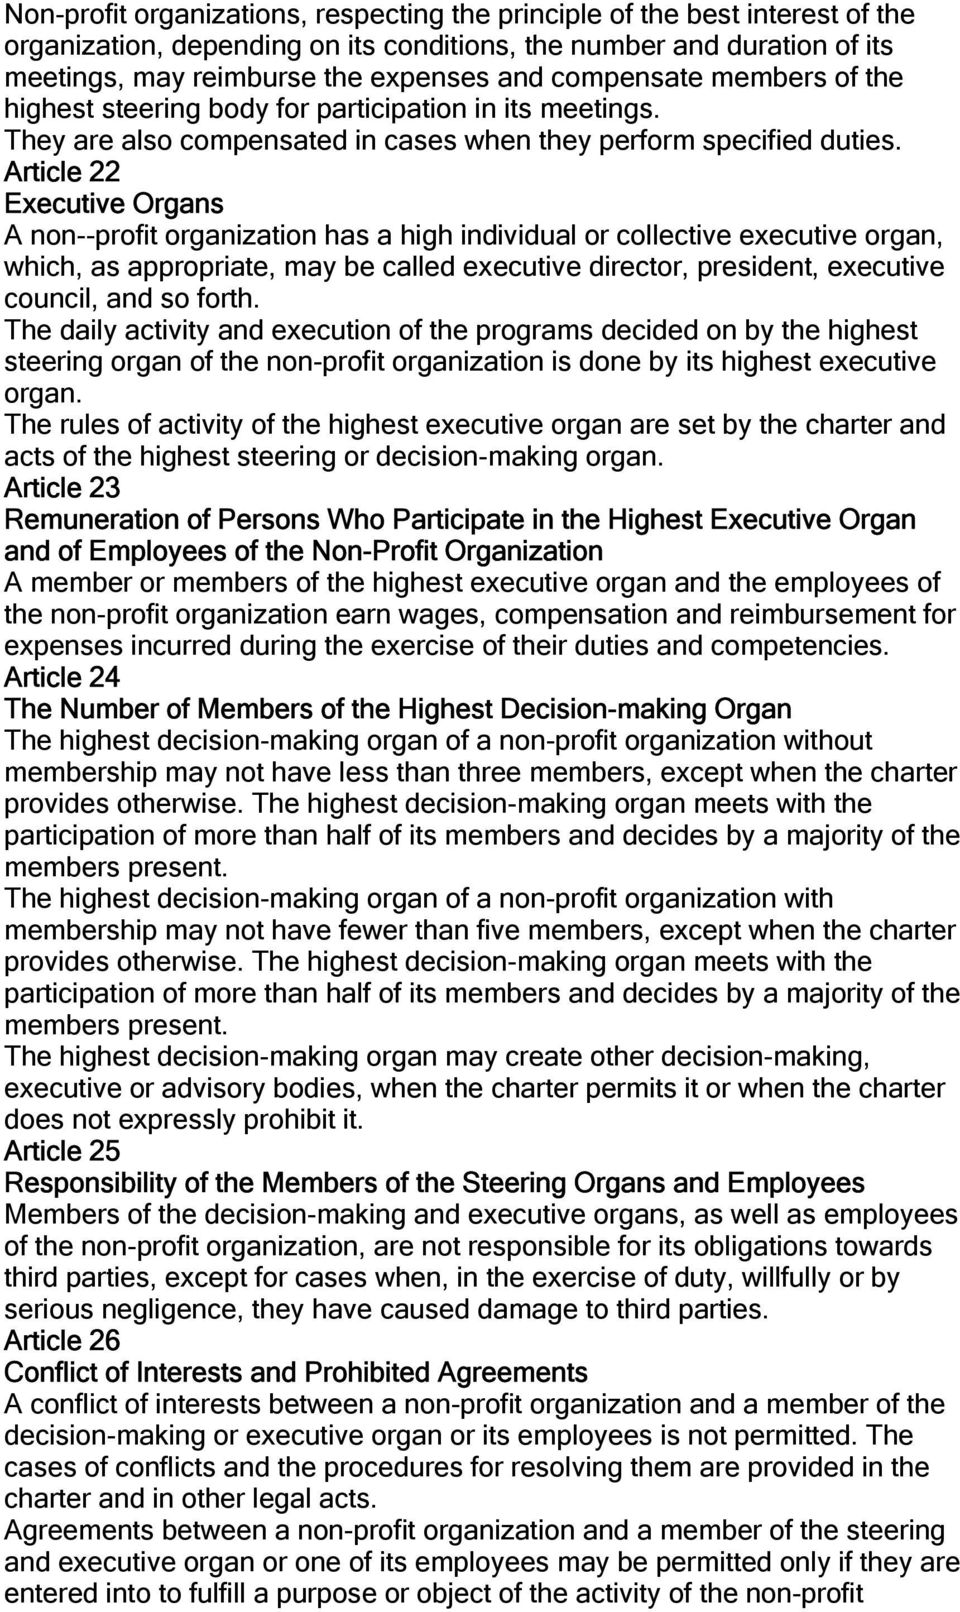 Article 22 Executive Organs A non--profit organization has a high individual or collective executive organ, which, as appropriate, may be called executive director, president, executive council, and